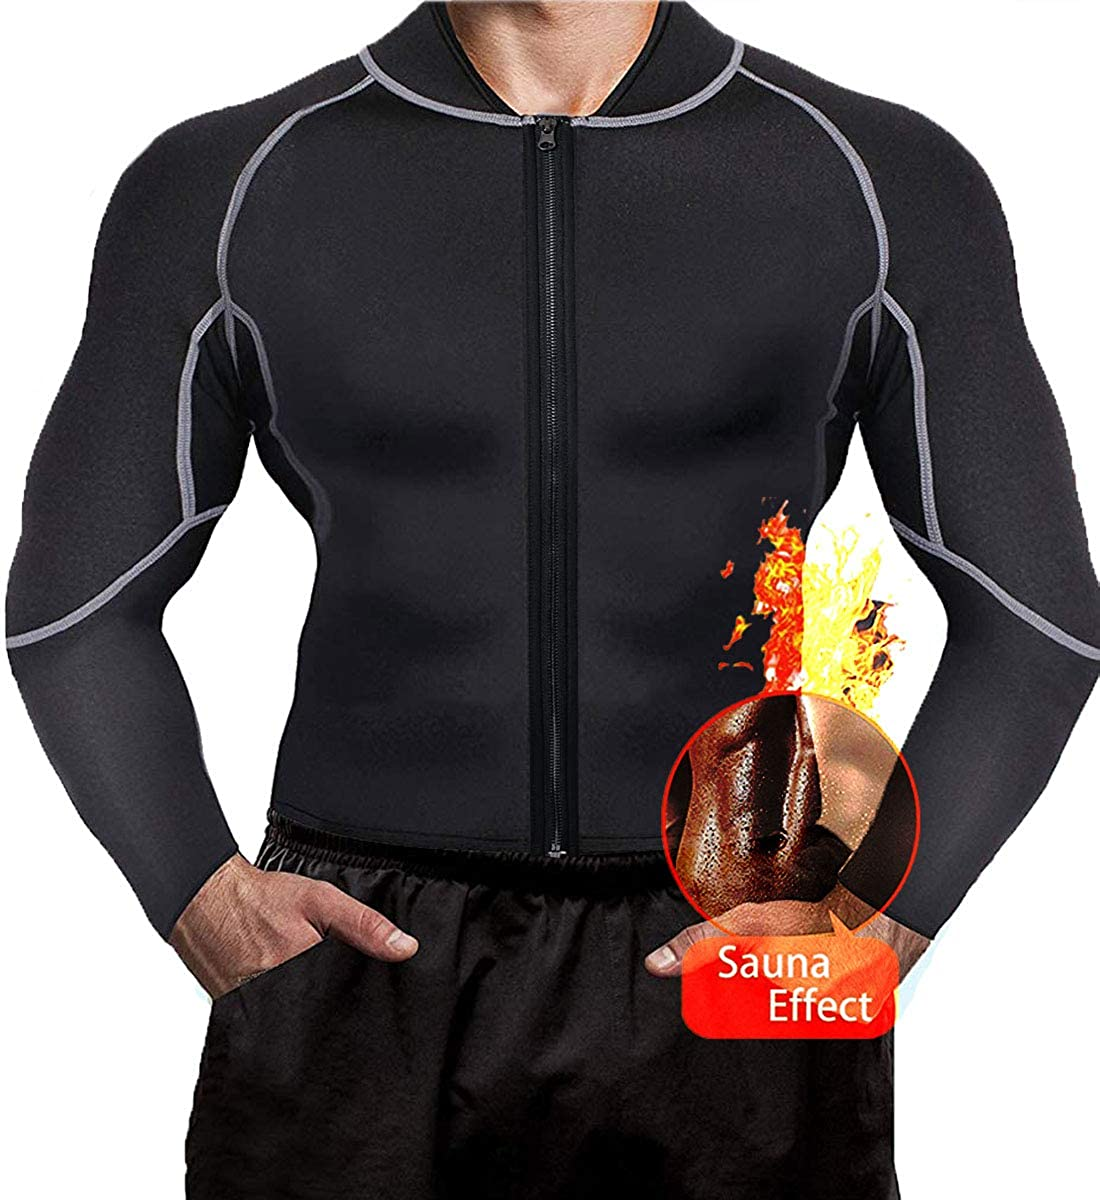 Men Sweat Sauna Suit Weight Loss Neoprene Workout Shirt Body Shaper Gym Compression Top Shapewear Fitness Long Sleeve